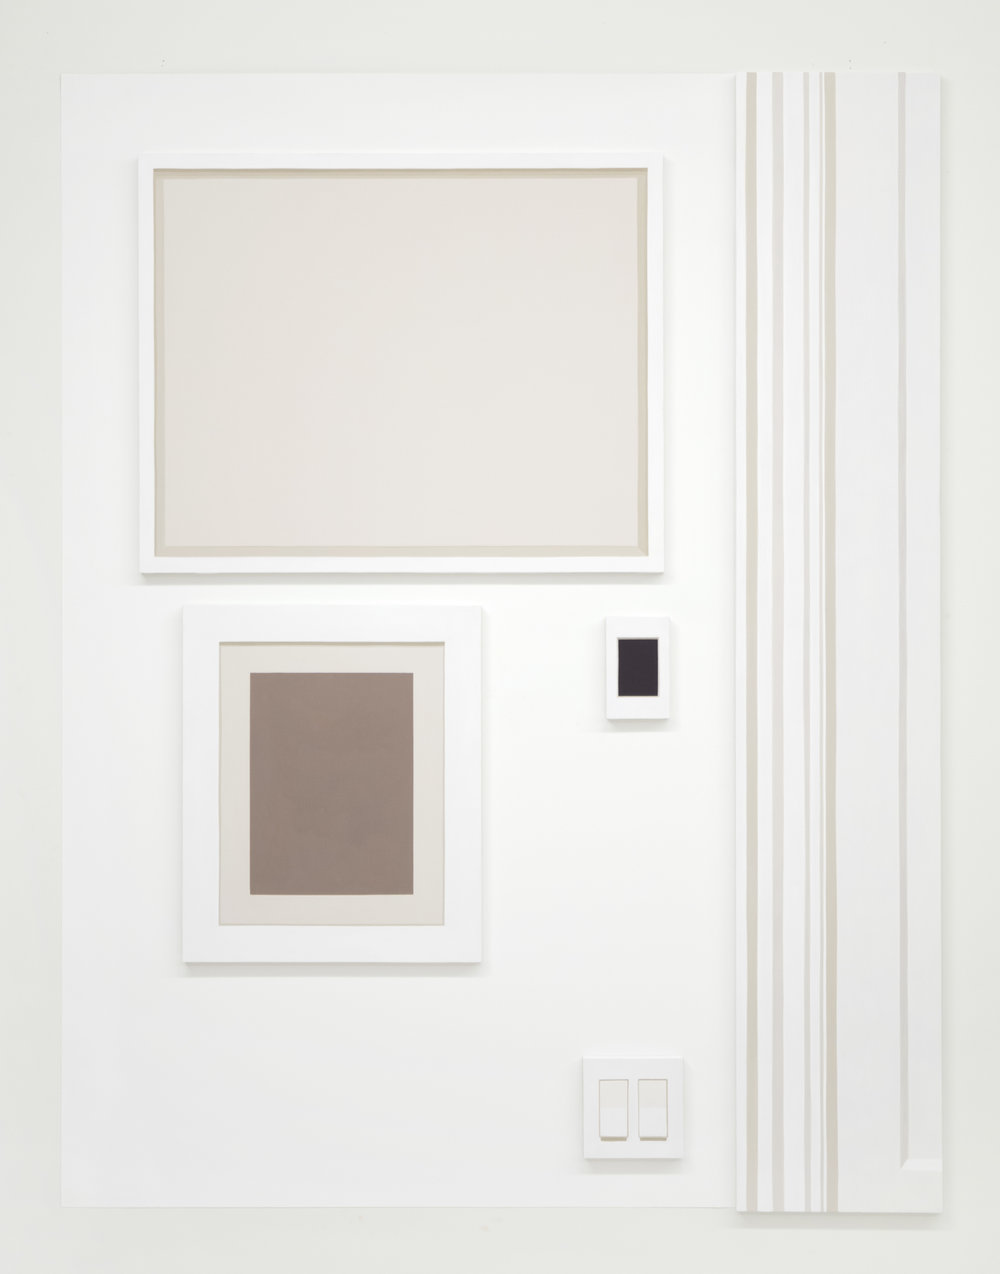 """Self Portrait No. 1,  2019, 54 ¾"""" h x 42 ¾"""" w x 3/4"""" d (overall). 5 paintings, various sizes. Wall: Benjamin Moore Super White #N215-02.  Pasquarelli's installation paintings expand on his desire to represent our psychological compulsions for perfection and order in the world around us. Much like Sol LeWitt, these works are accompanied by a blueprint diagram, specifying not only the size and location of a delineated area to be painted on the wall, but the precise location for each oil painting to be hung within that area."""